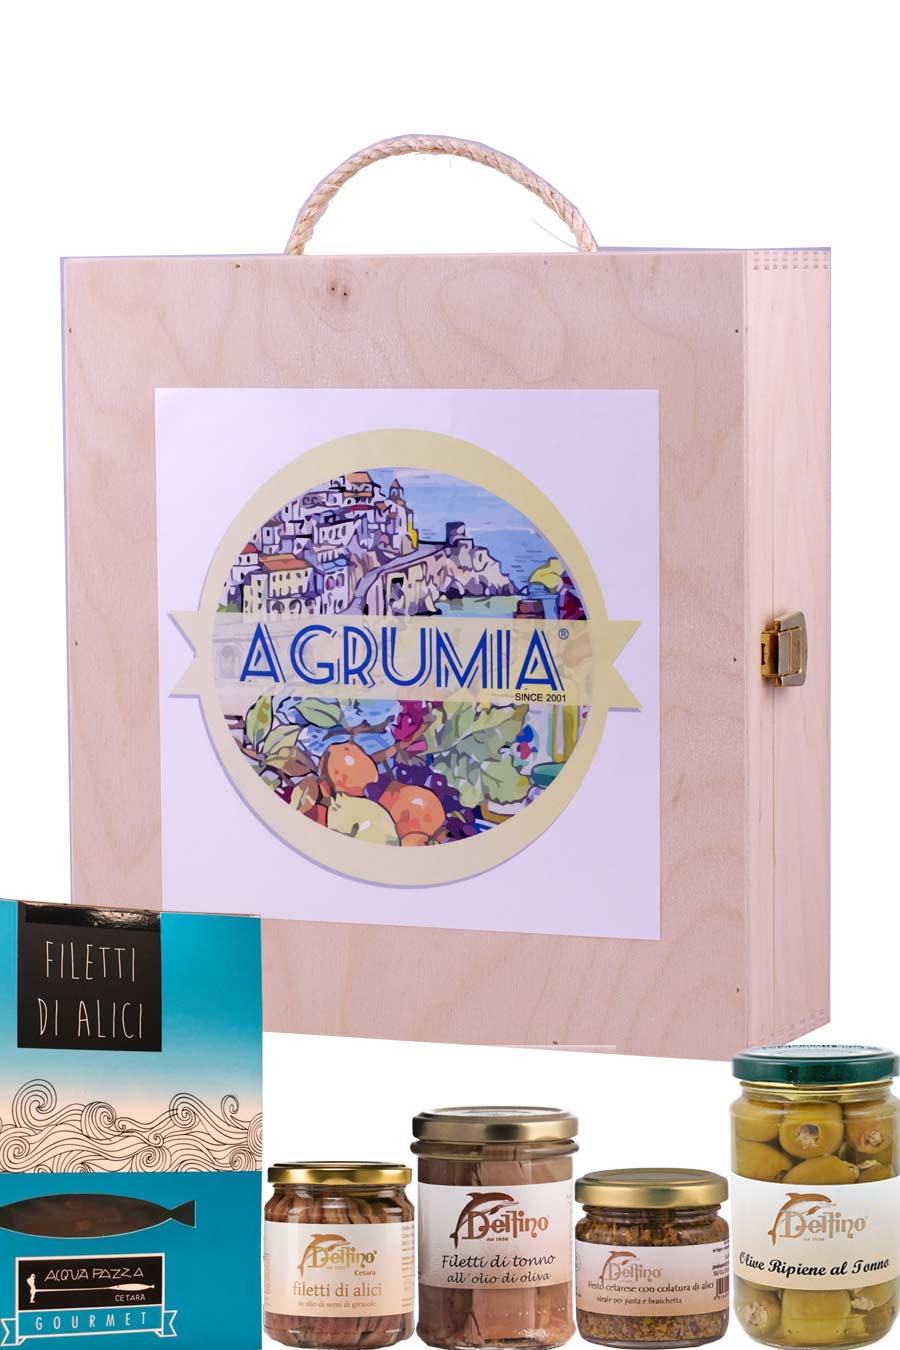 Agrumia Fisherman's Net Hamper Box